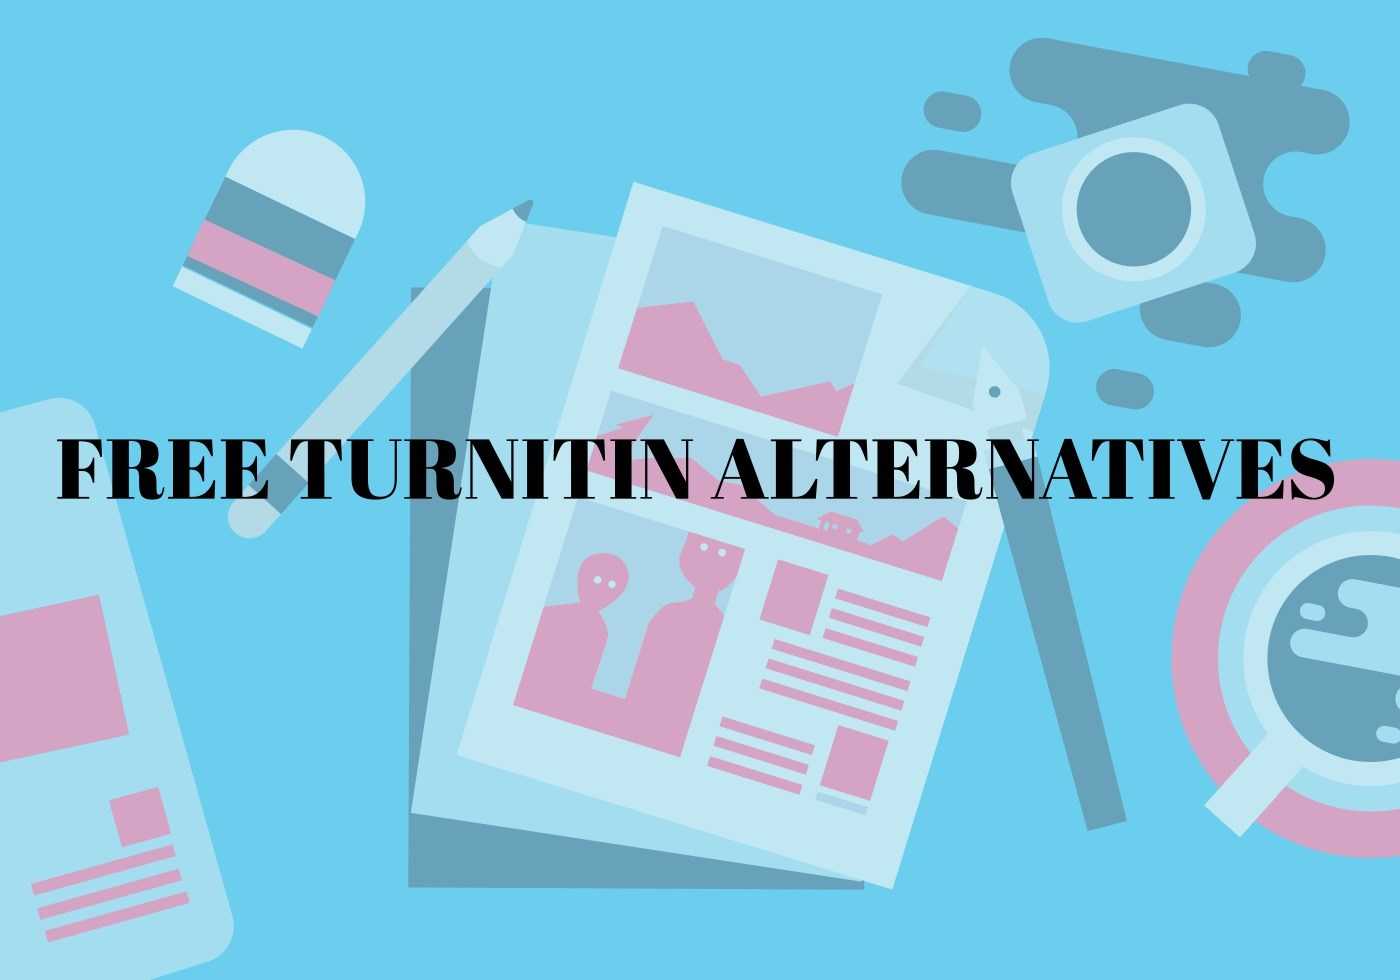 023 Research Paper Turntin Alternatives Free Plagiarism Checker For Students Unique Online Turnitin Check With Percentage Software Full